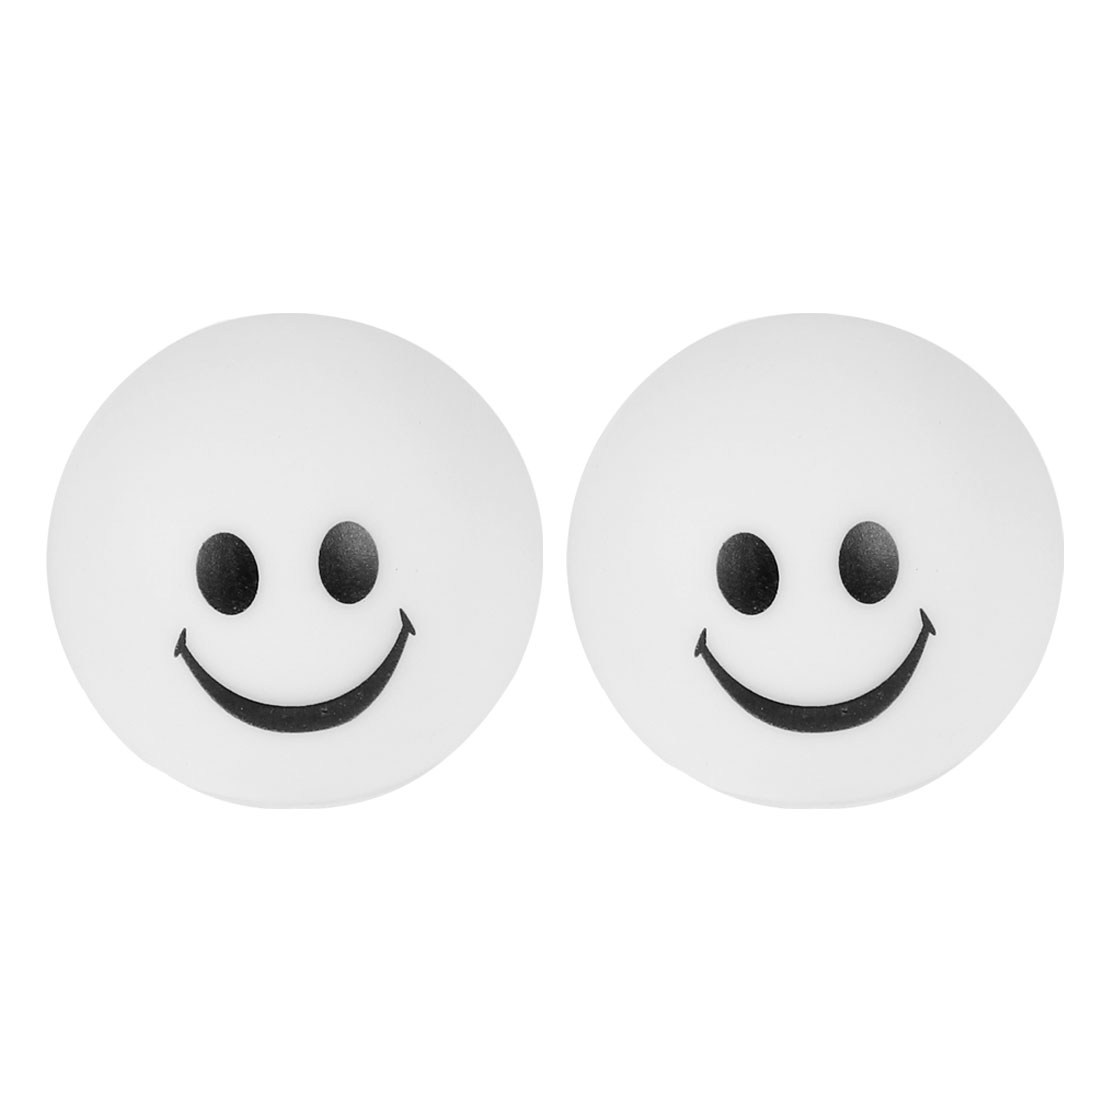 2 Pcs Smiling Face Shaped Colorful LED Night Light Table Lamp